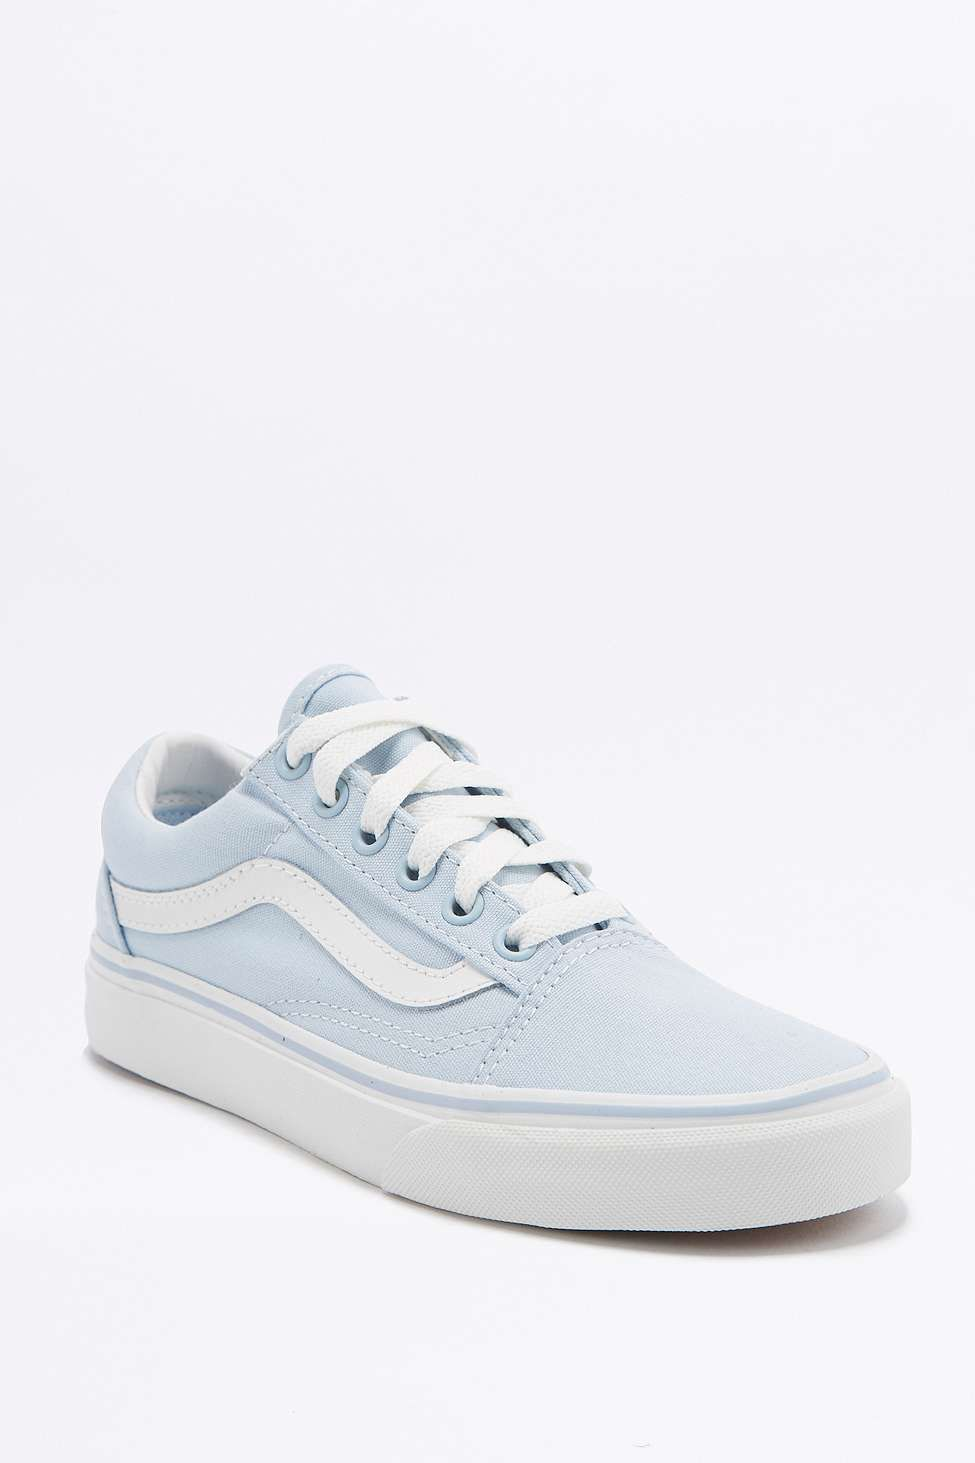 UA OLD SKOOL - NEON LEATHER - CHAUSSURES - Sneakers & Tennis bassesVans v0fadfmw06